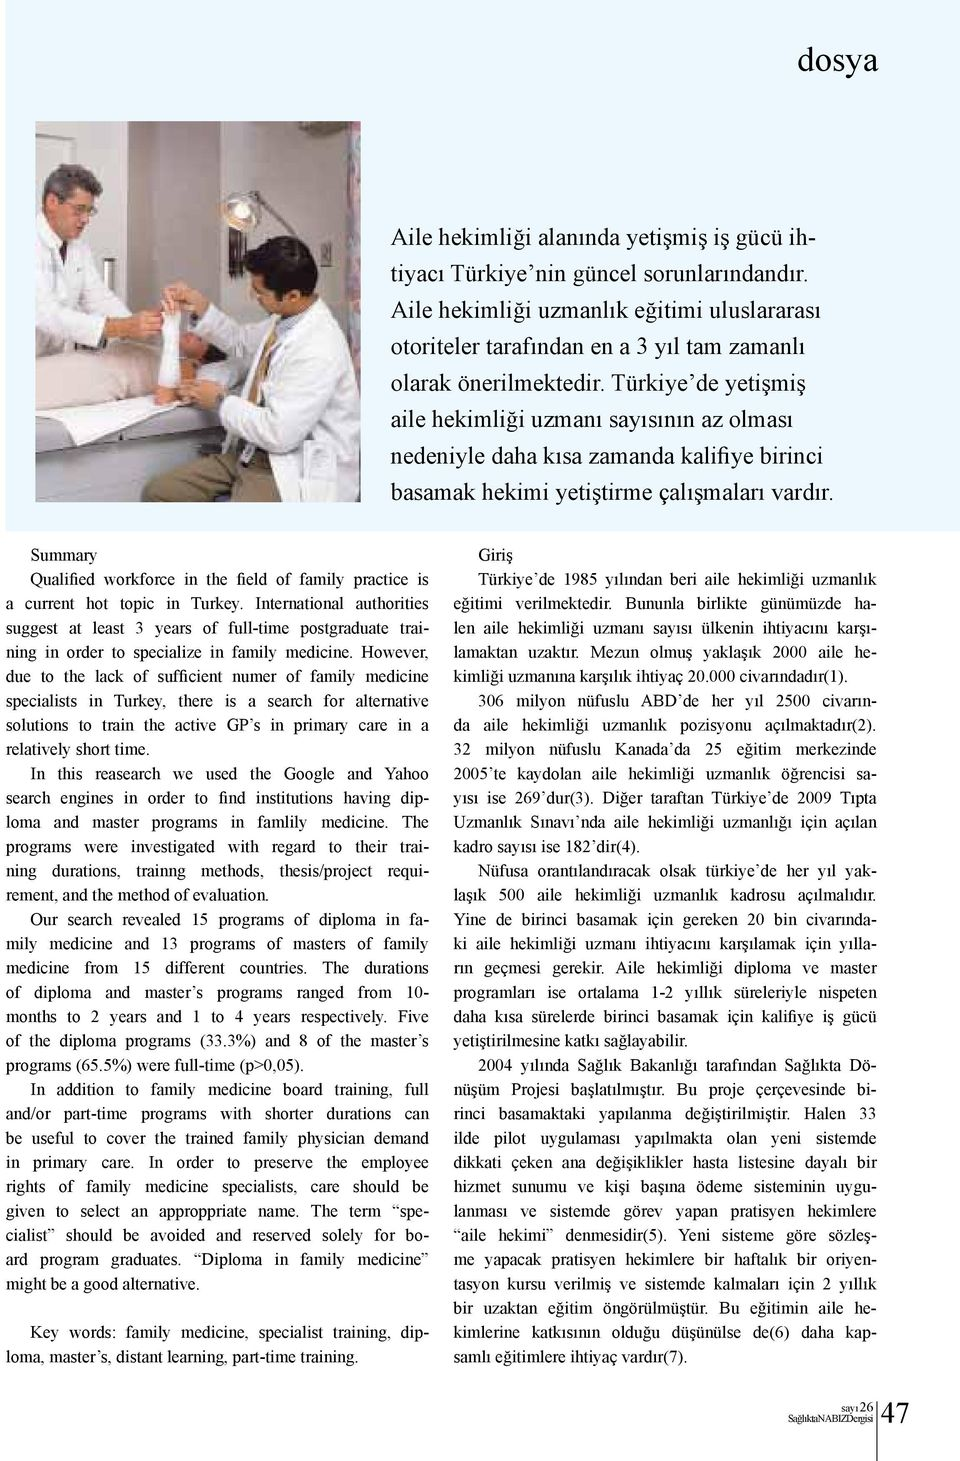 Summary Qualified workforce in the field of family practice is a current hot topic in Turkey.